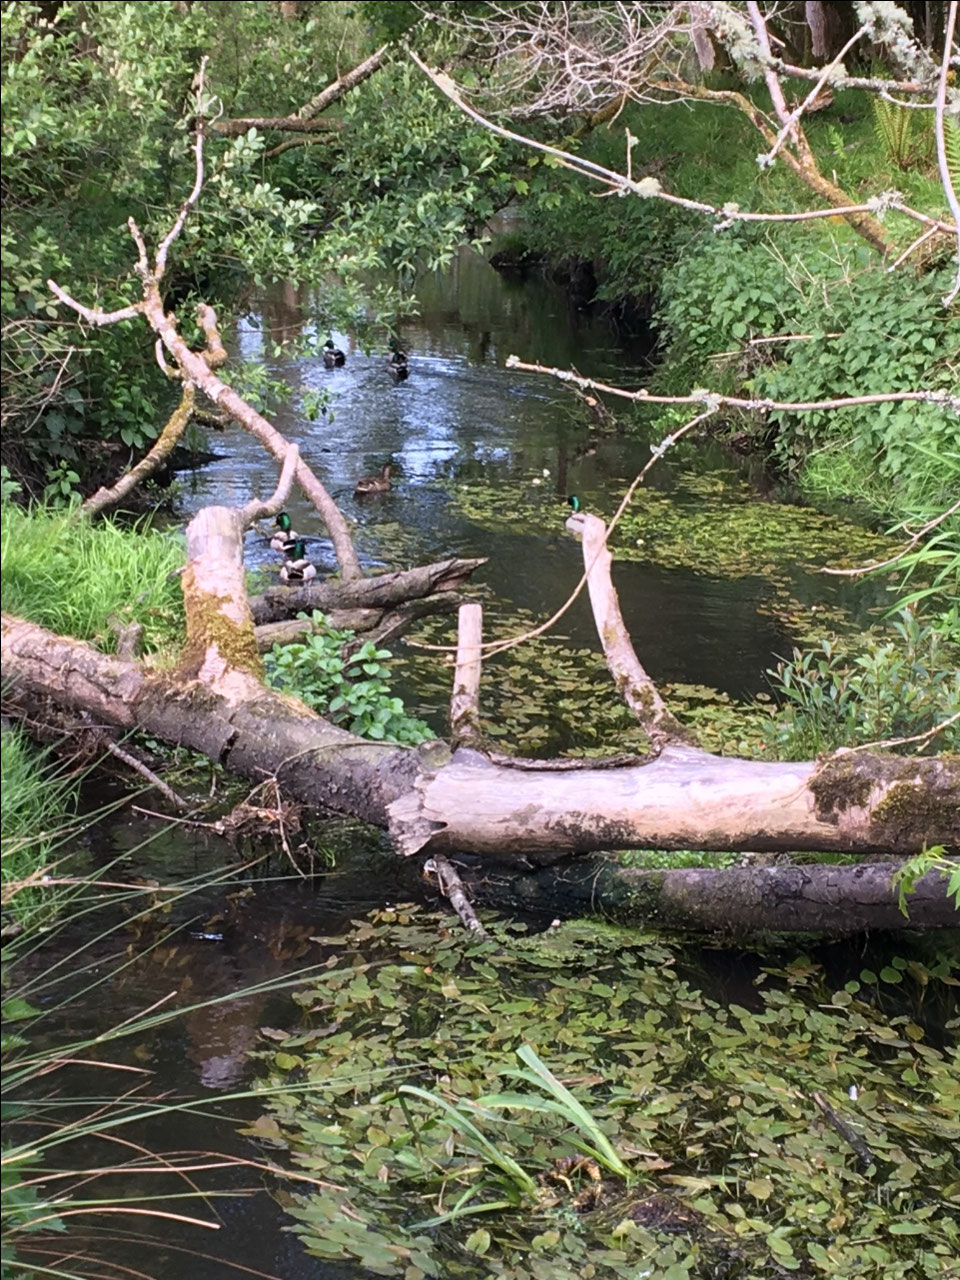 A brook in the park